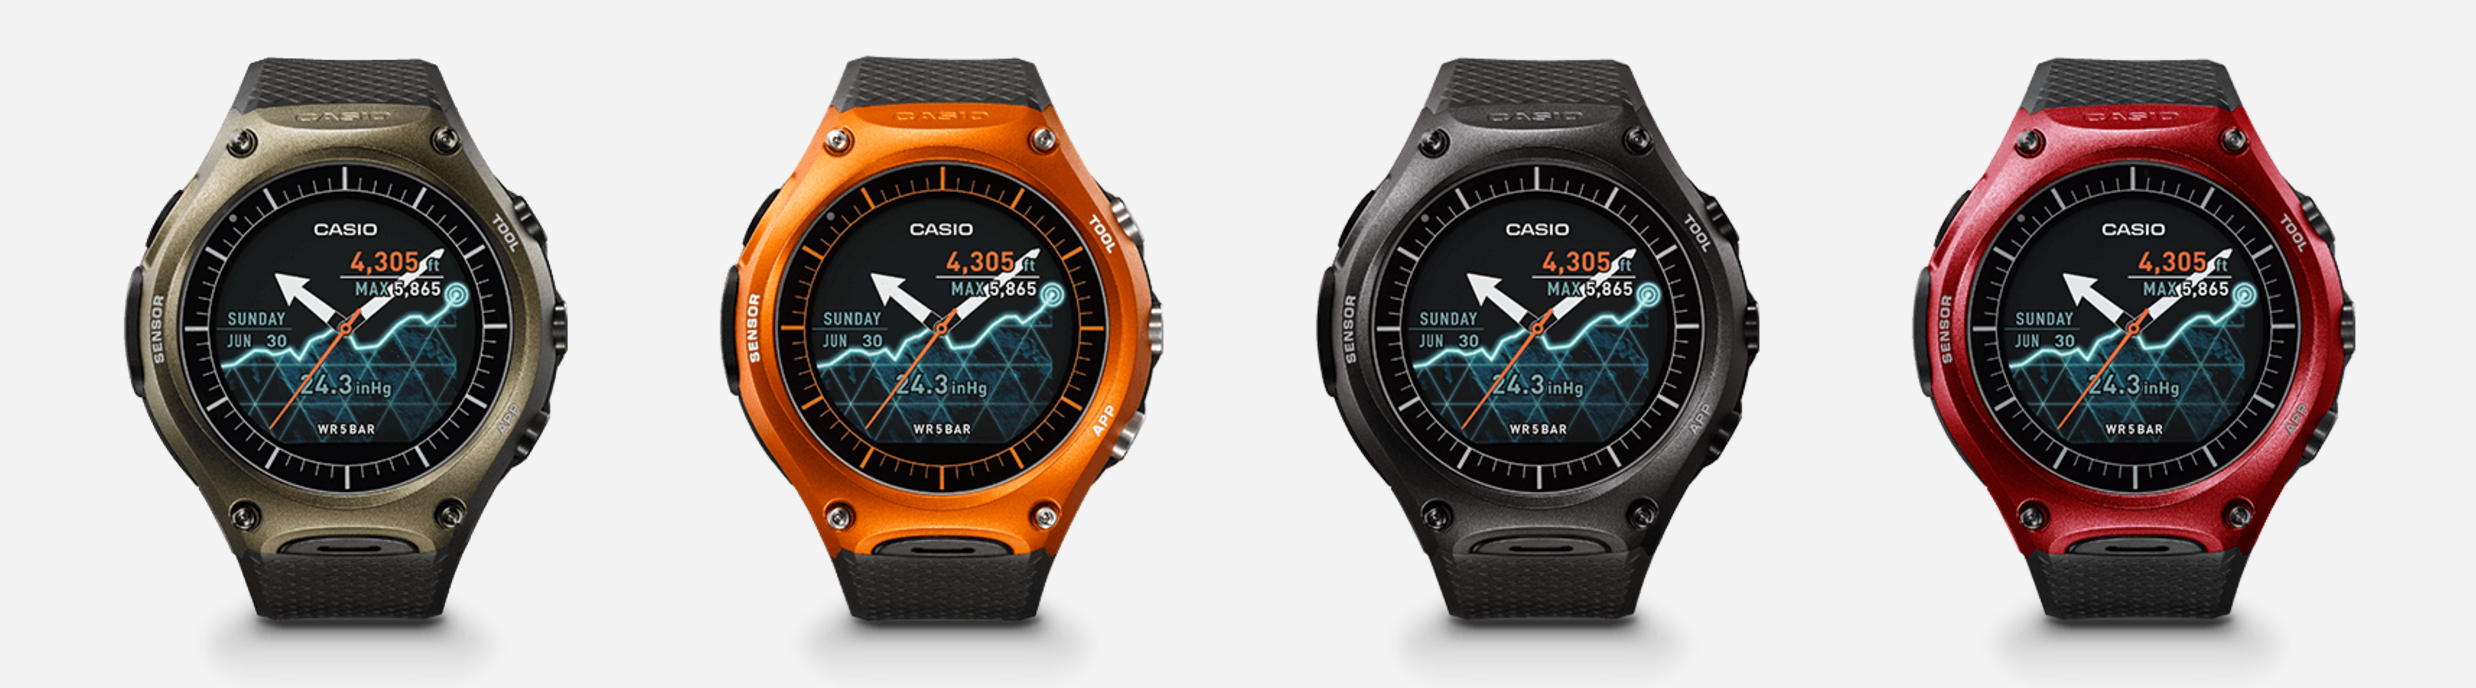 casio-outdoor